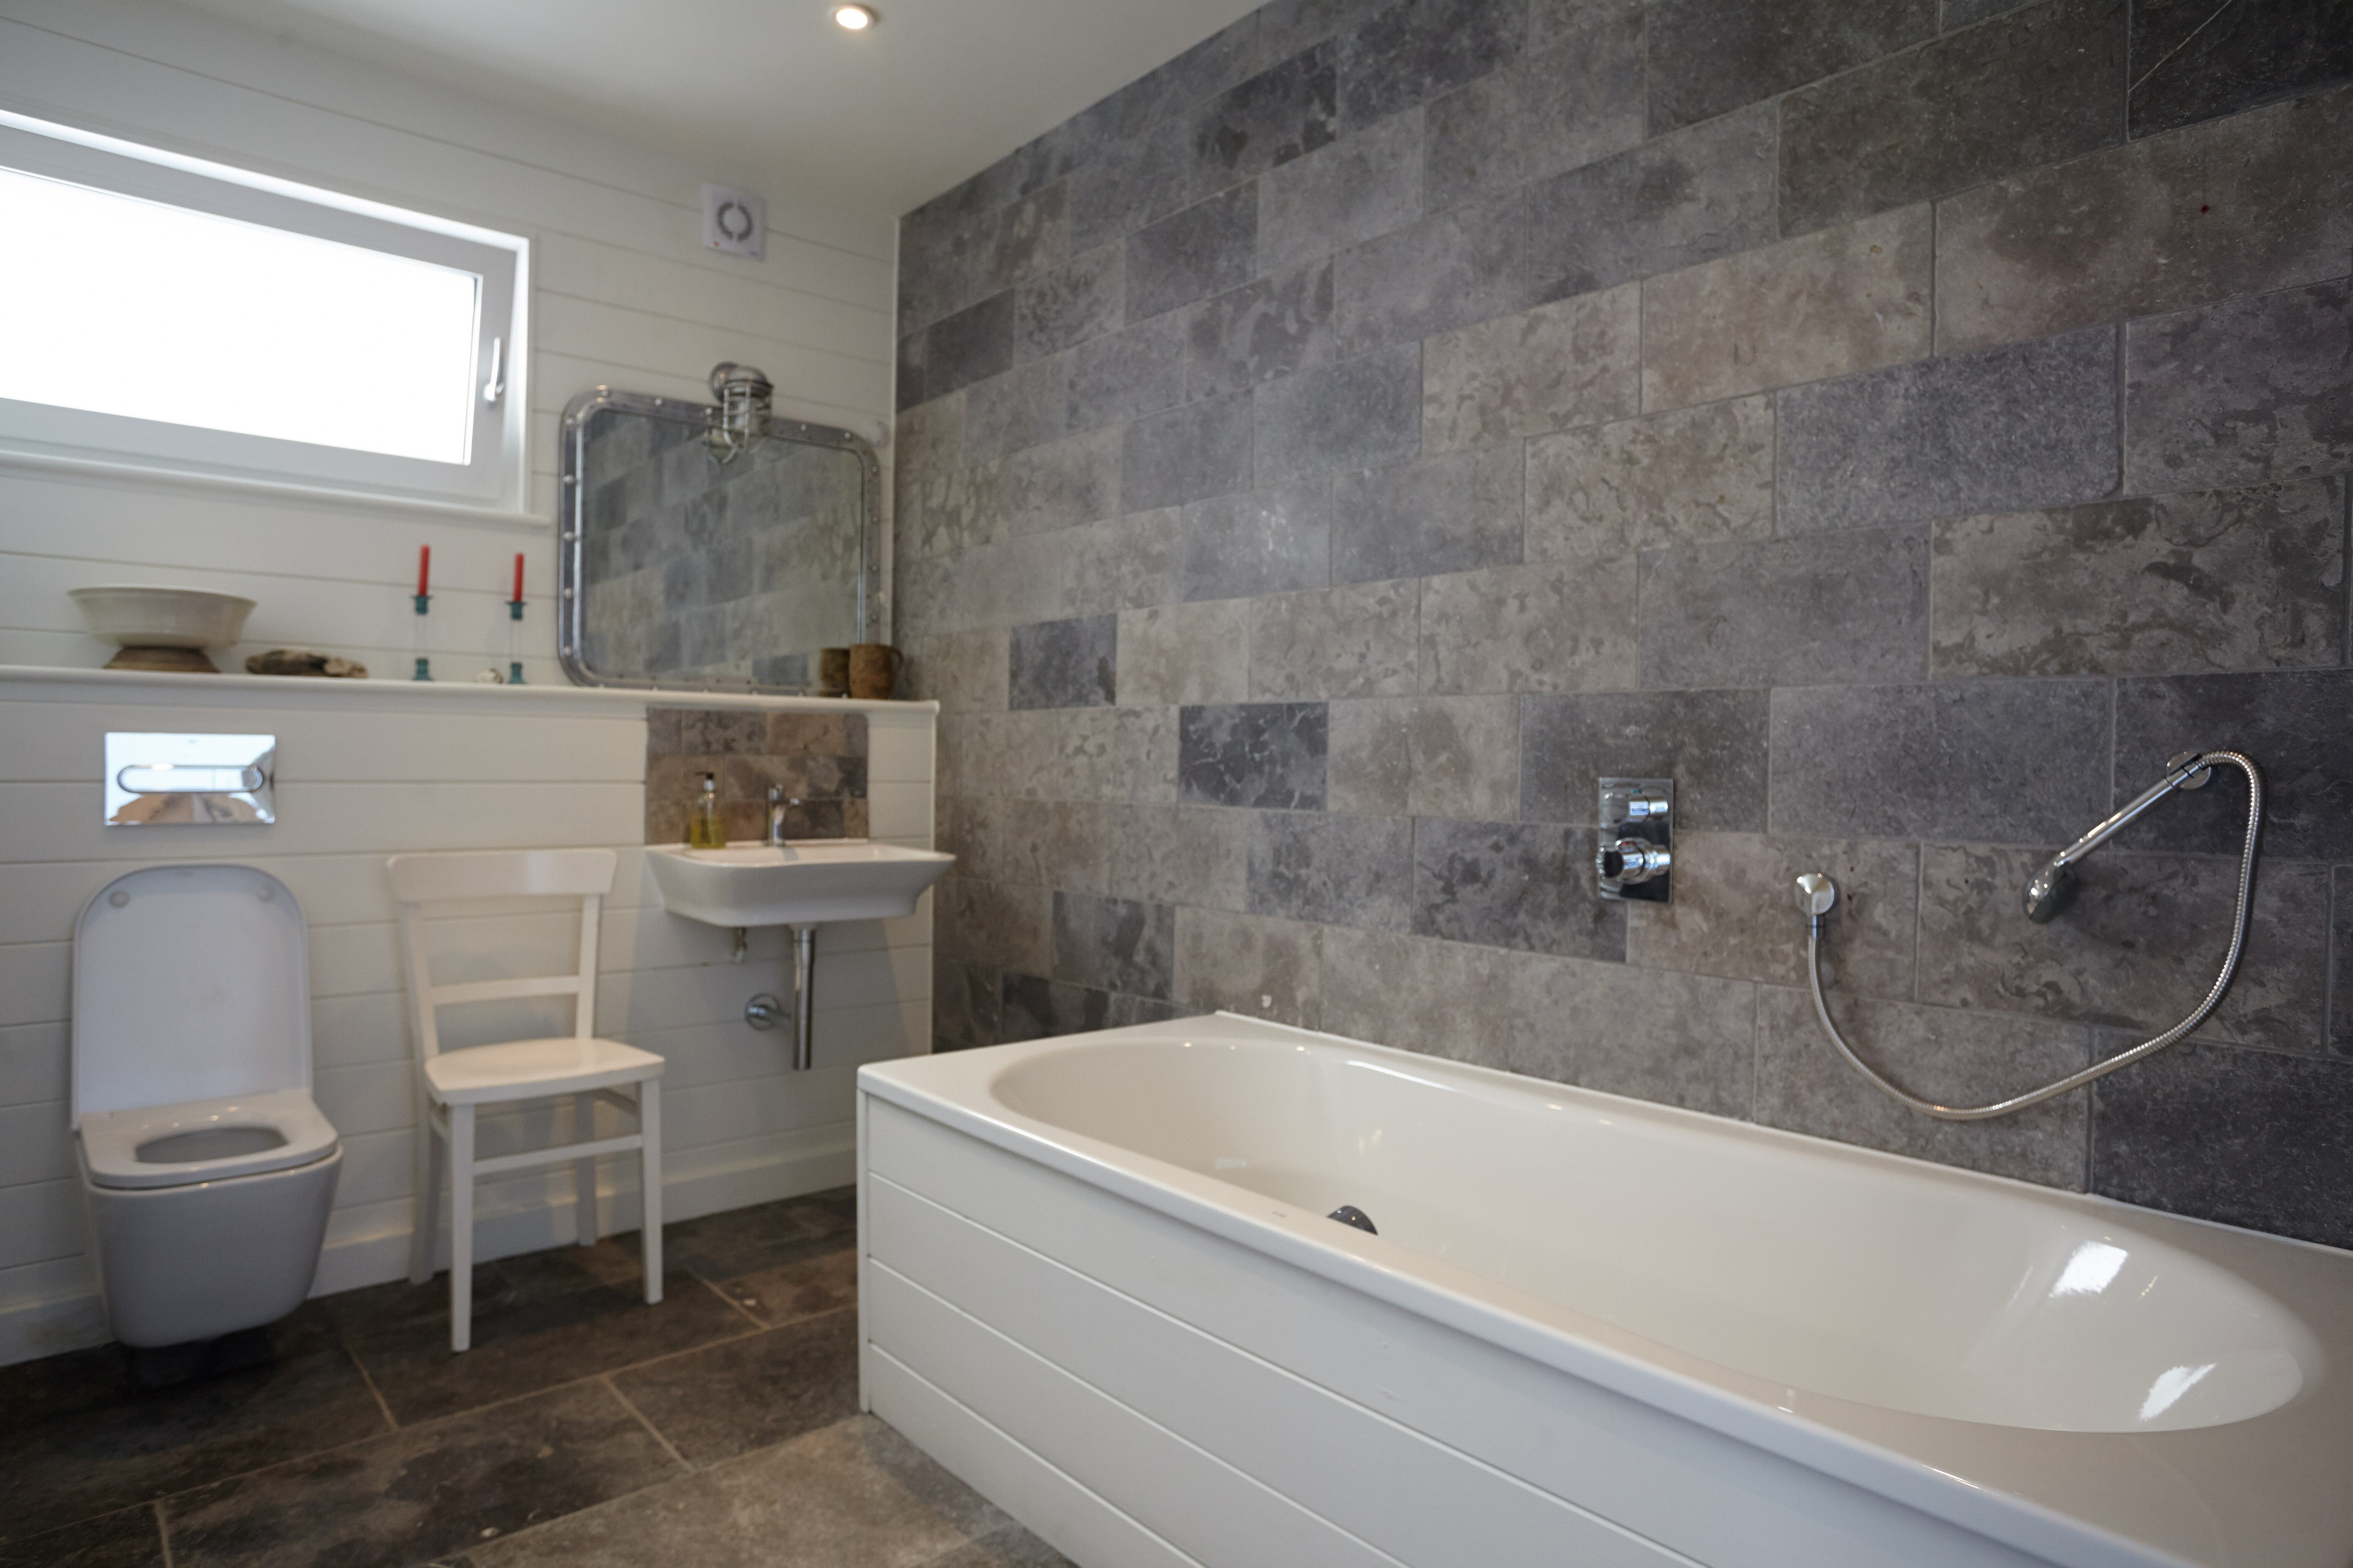 Beachside Bathrooms Installer Onlineinstaller Online